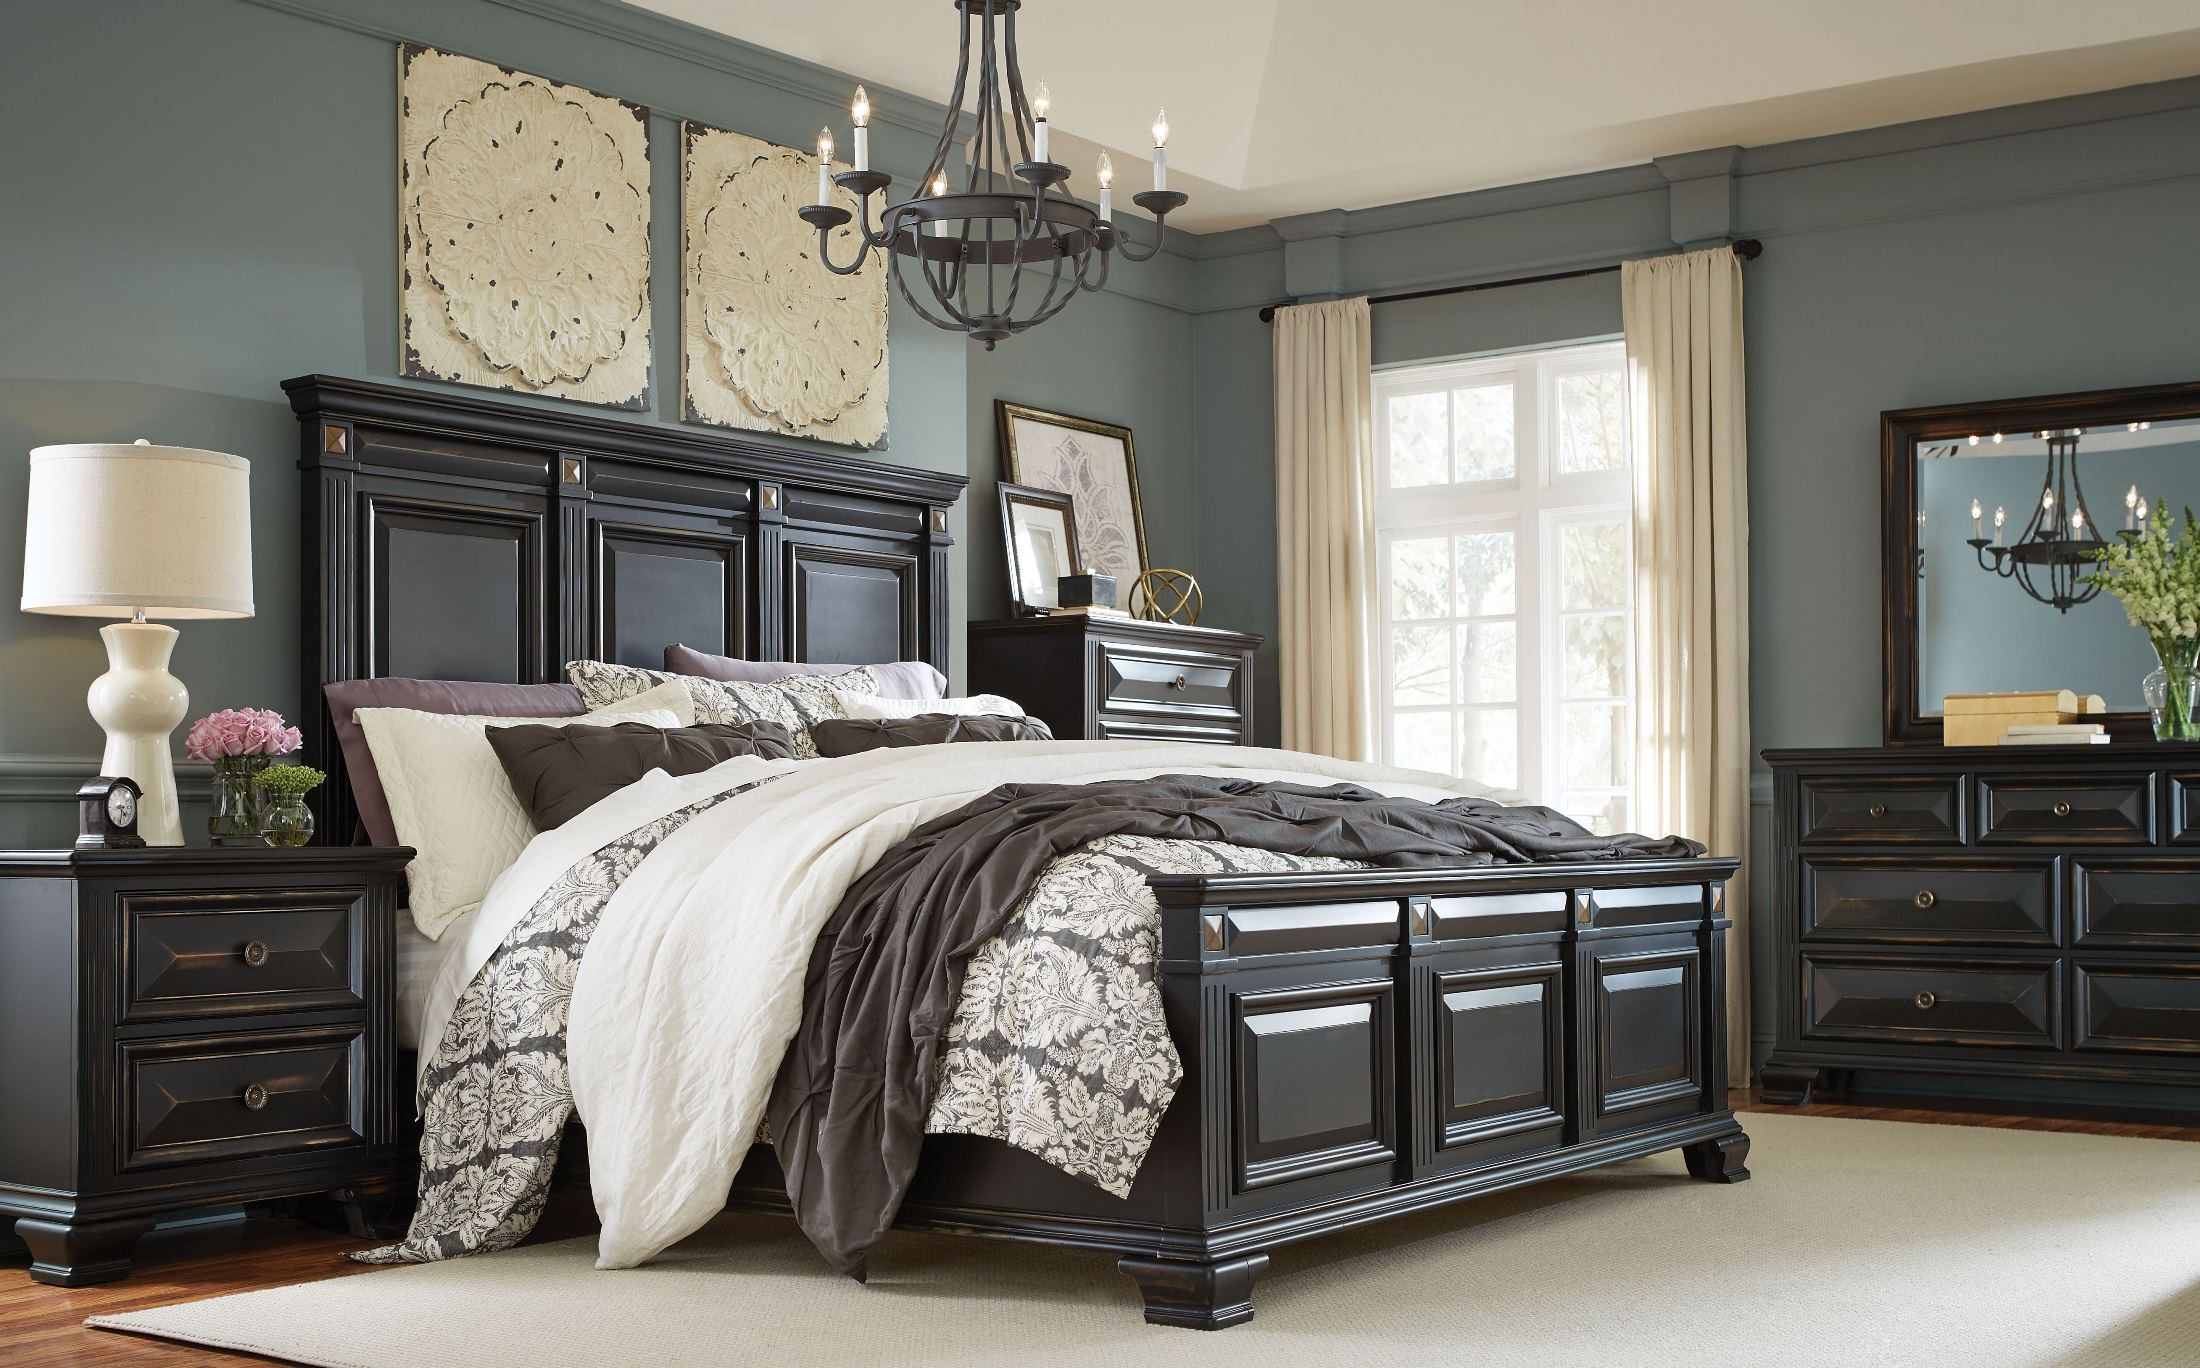 Passages Vintage Black Panel Bedroom Set From Standard Furniture Coleman Furniture